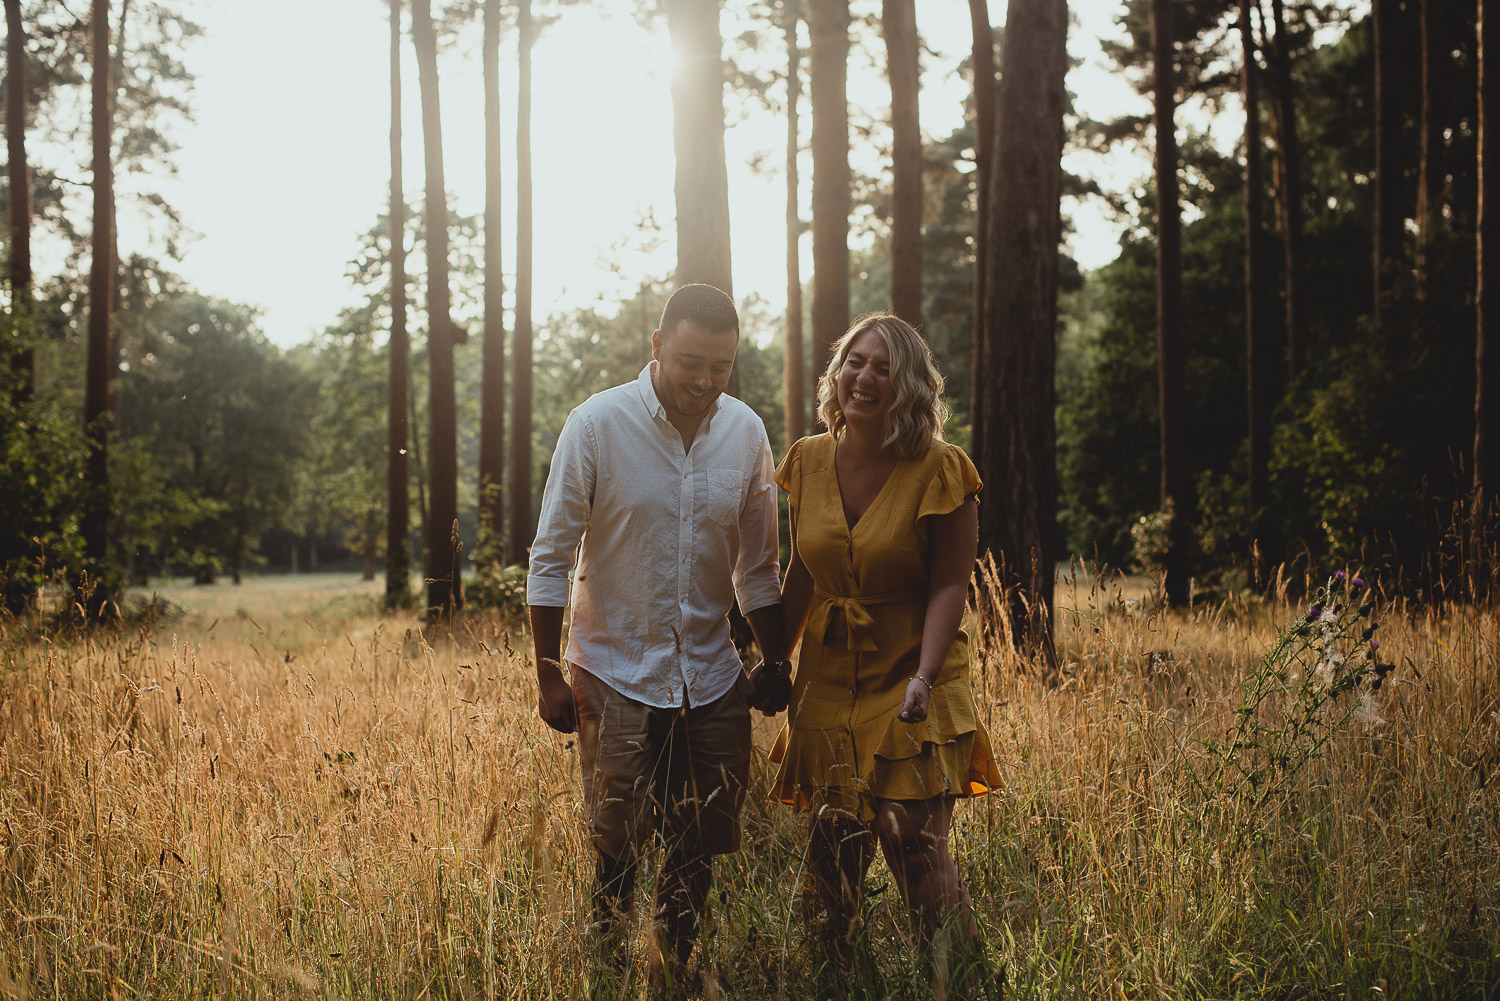 thetford forest engagement by georgia rachael photography